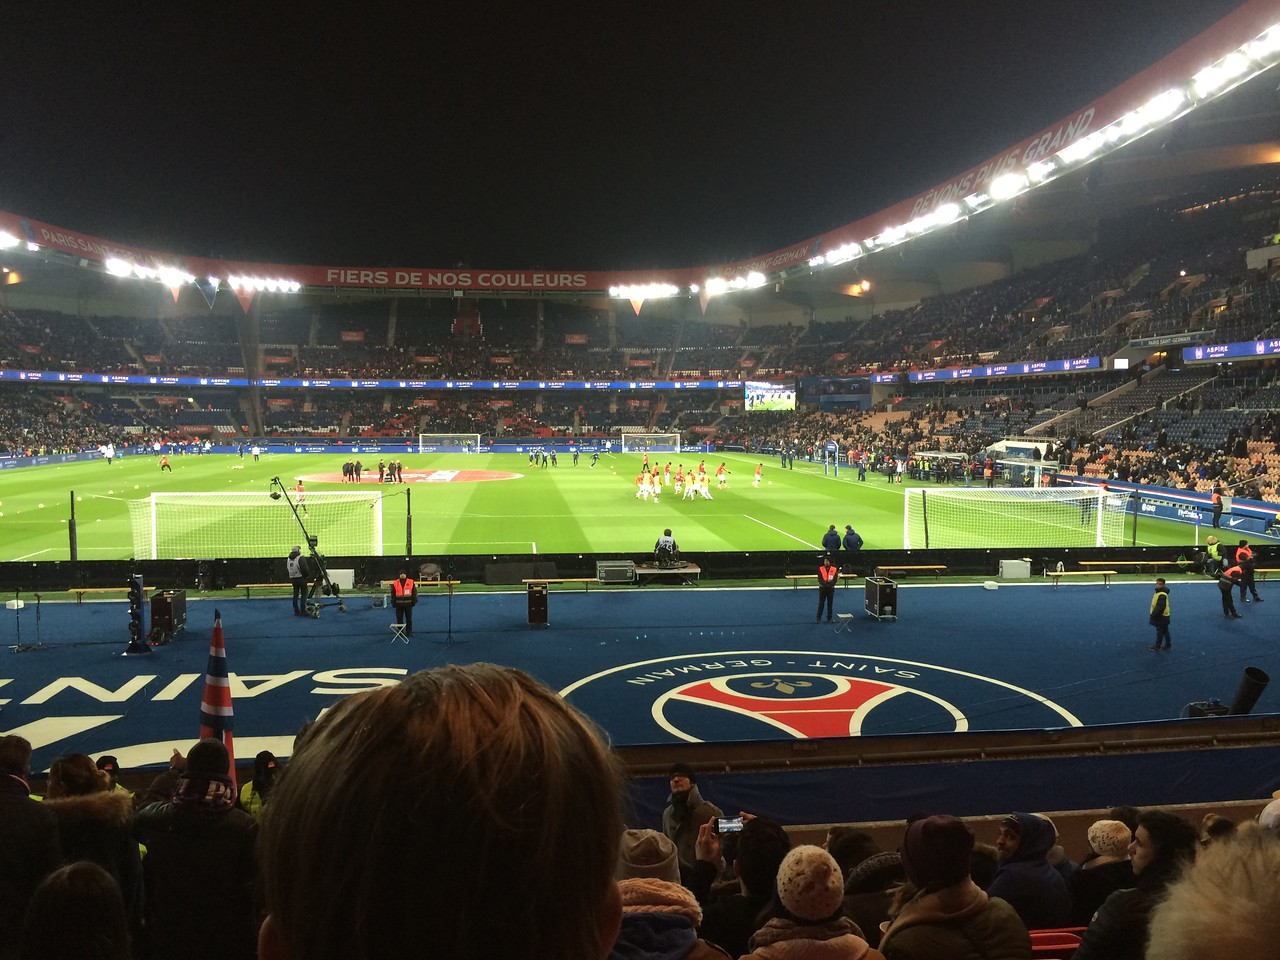 Paris vs. Monaco at Parc des Princes (3/20/16)